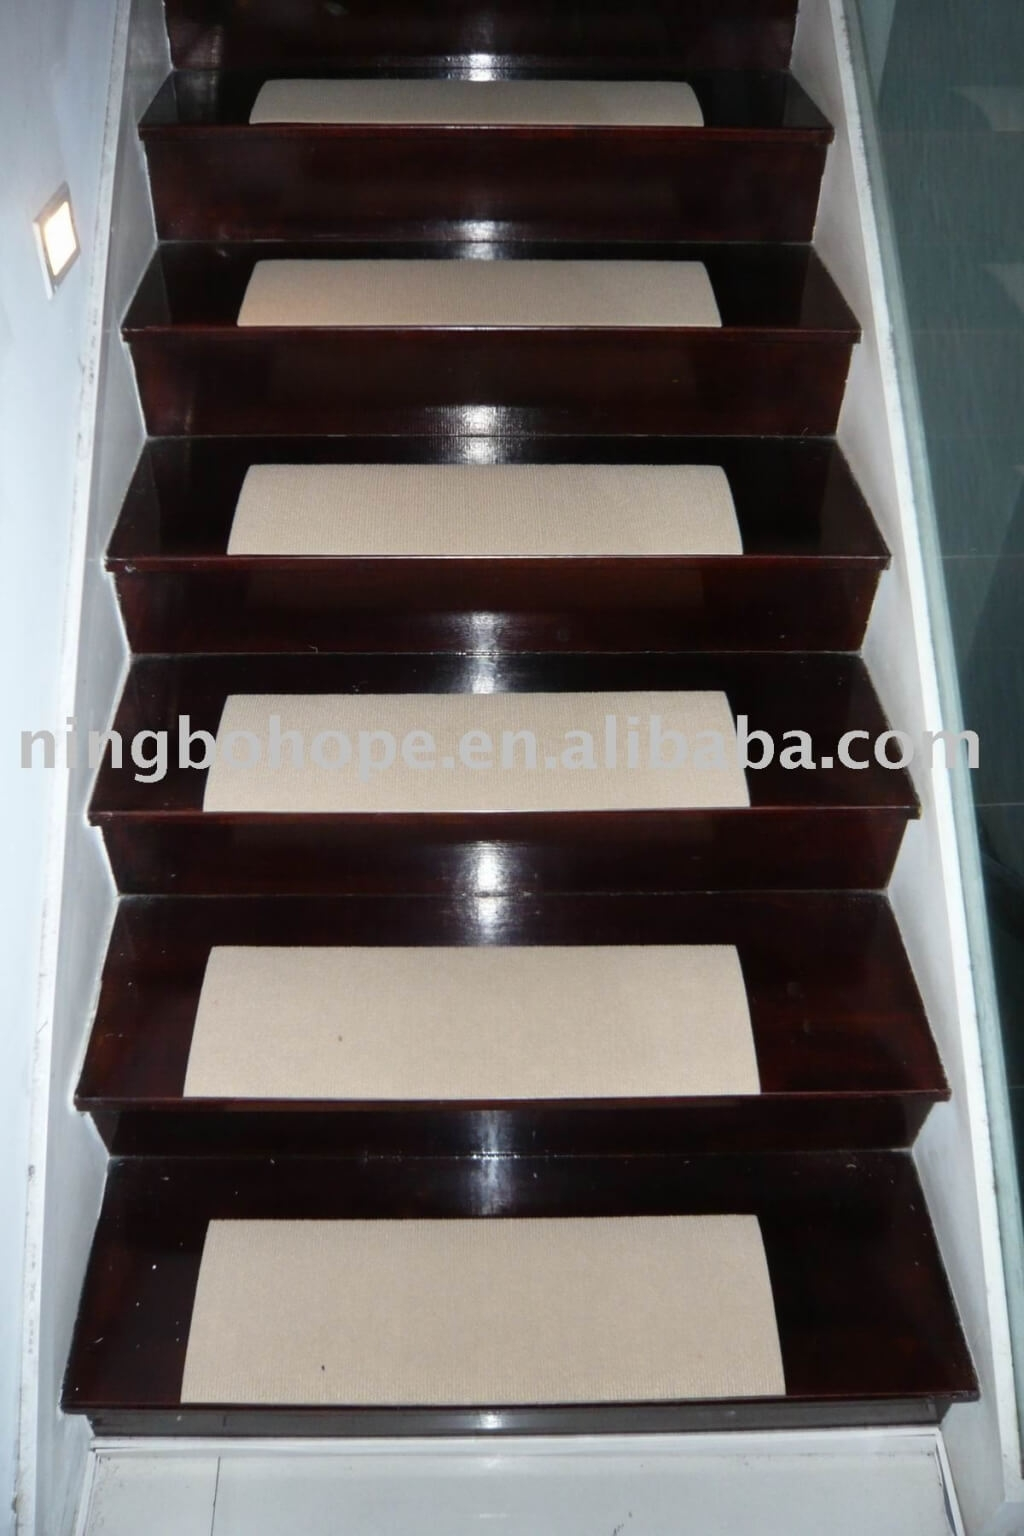 Flooring Self Adhesive Carpet Non Slip Stair Treads Non Slip Inside Adhesive Carpet Stair Treads (Image 10 of 15)